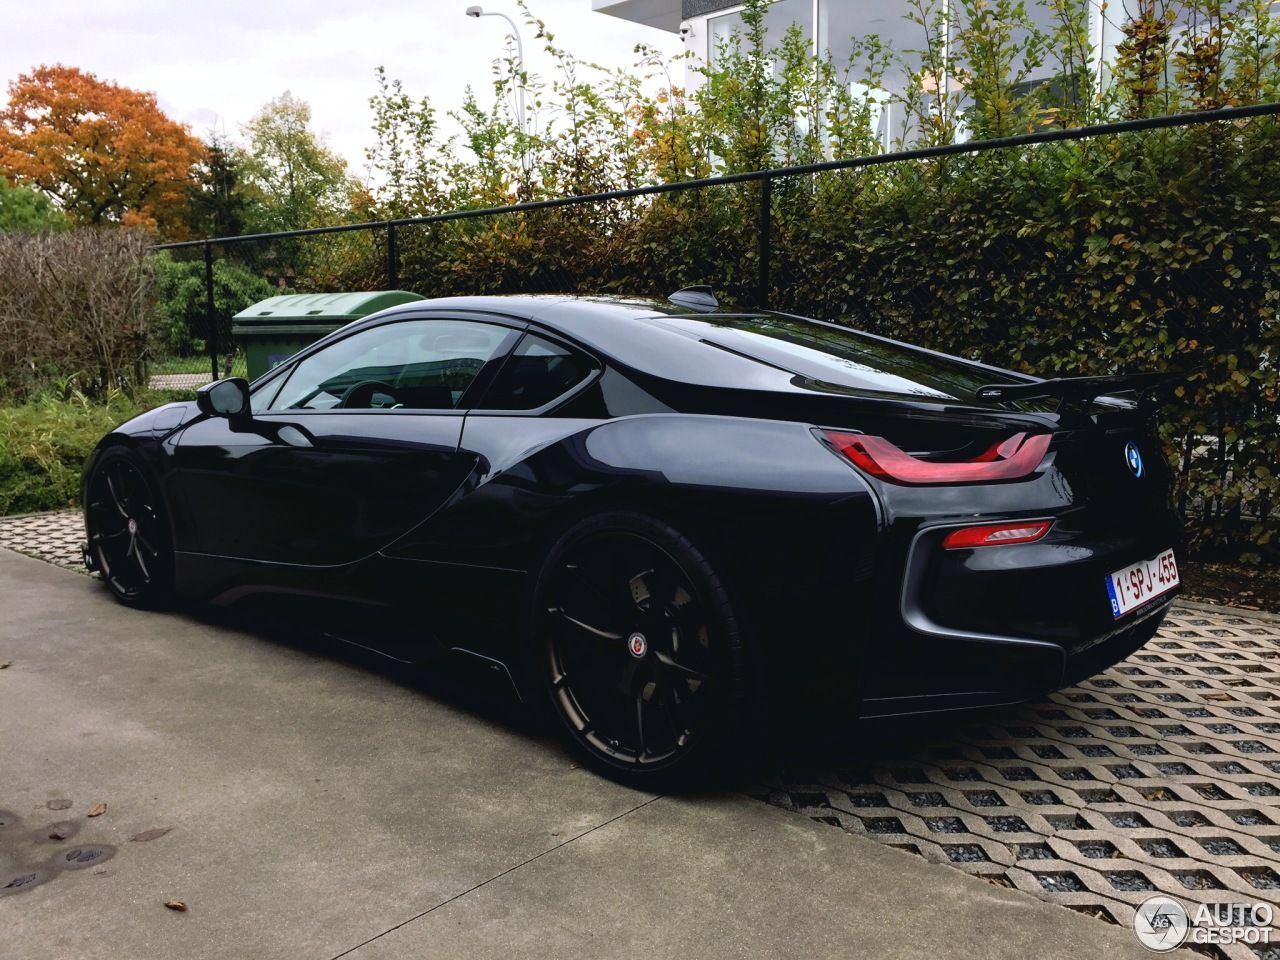 All Black Ac Schnitzer Tuned Bmw I8 Is What Kitt Would Look Like Today Carscoops Bmw I8 Bmw Bmw I8 Black